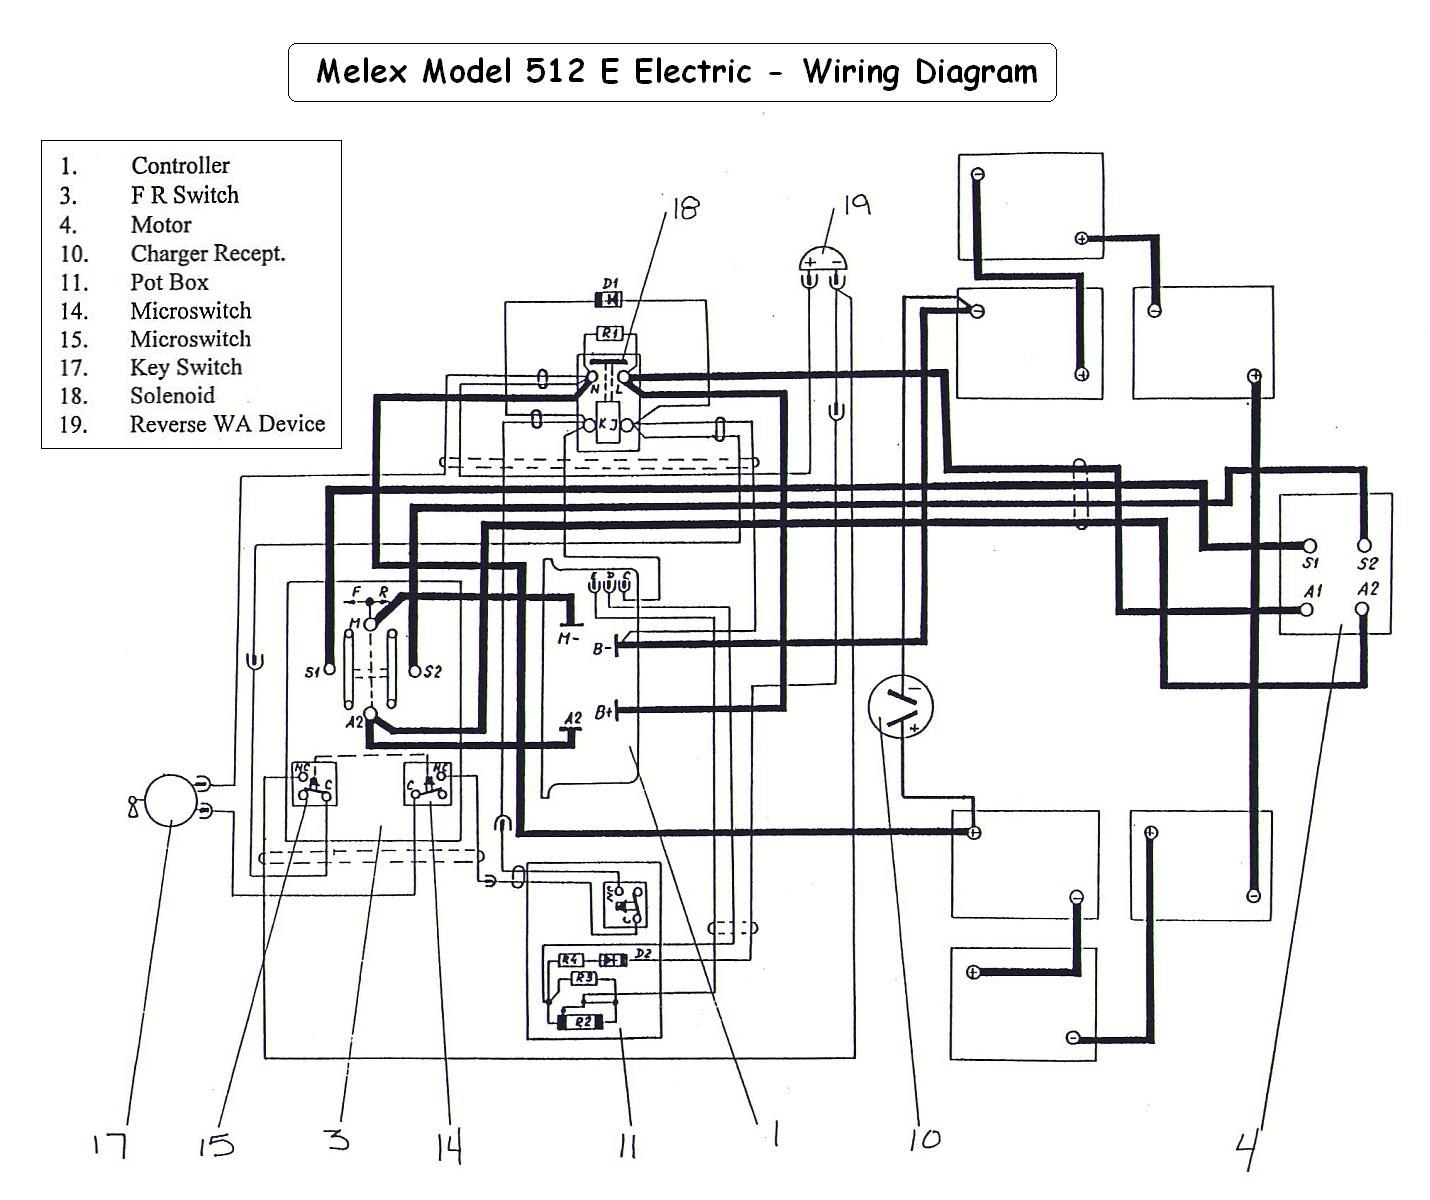 Melex512E_wiring_diagram vintagegolfcartparts com Taylor Dunn Carts at n-0.co